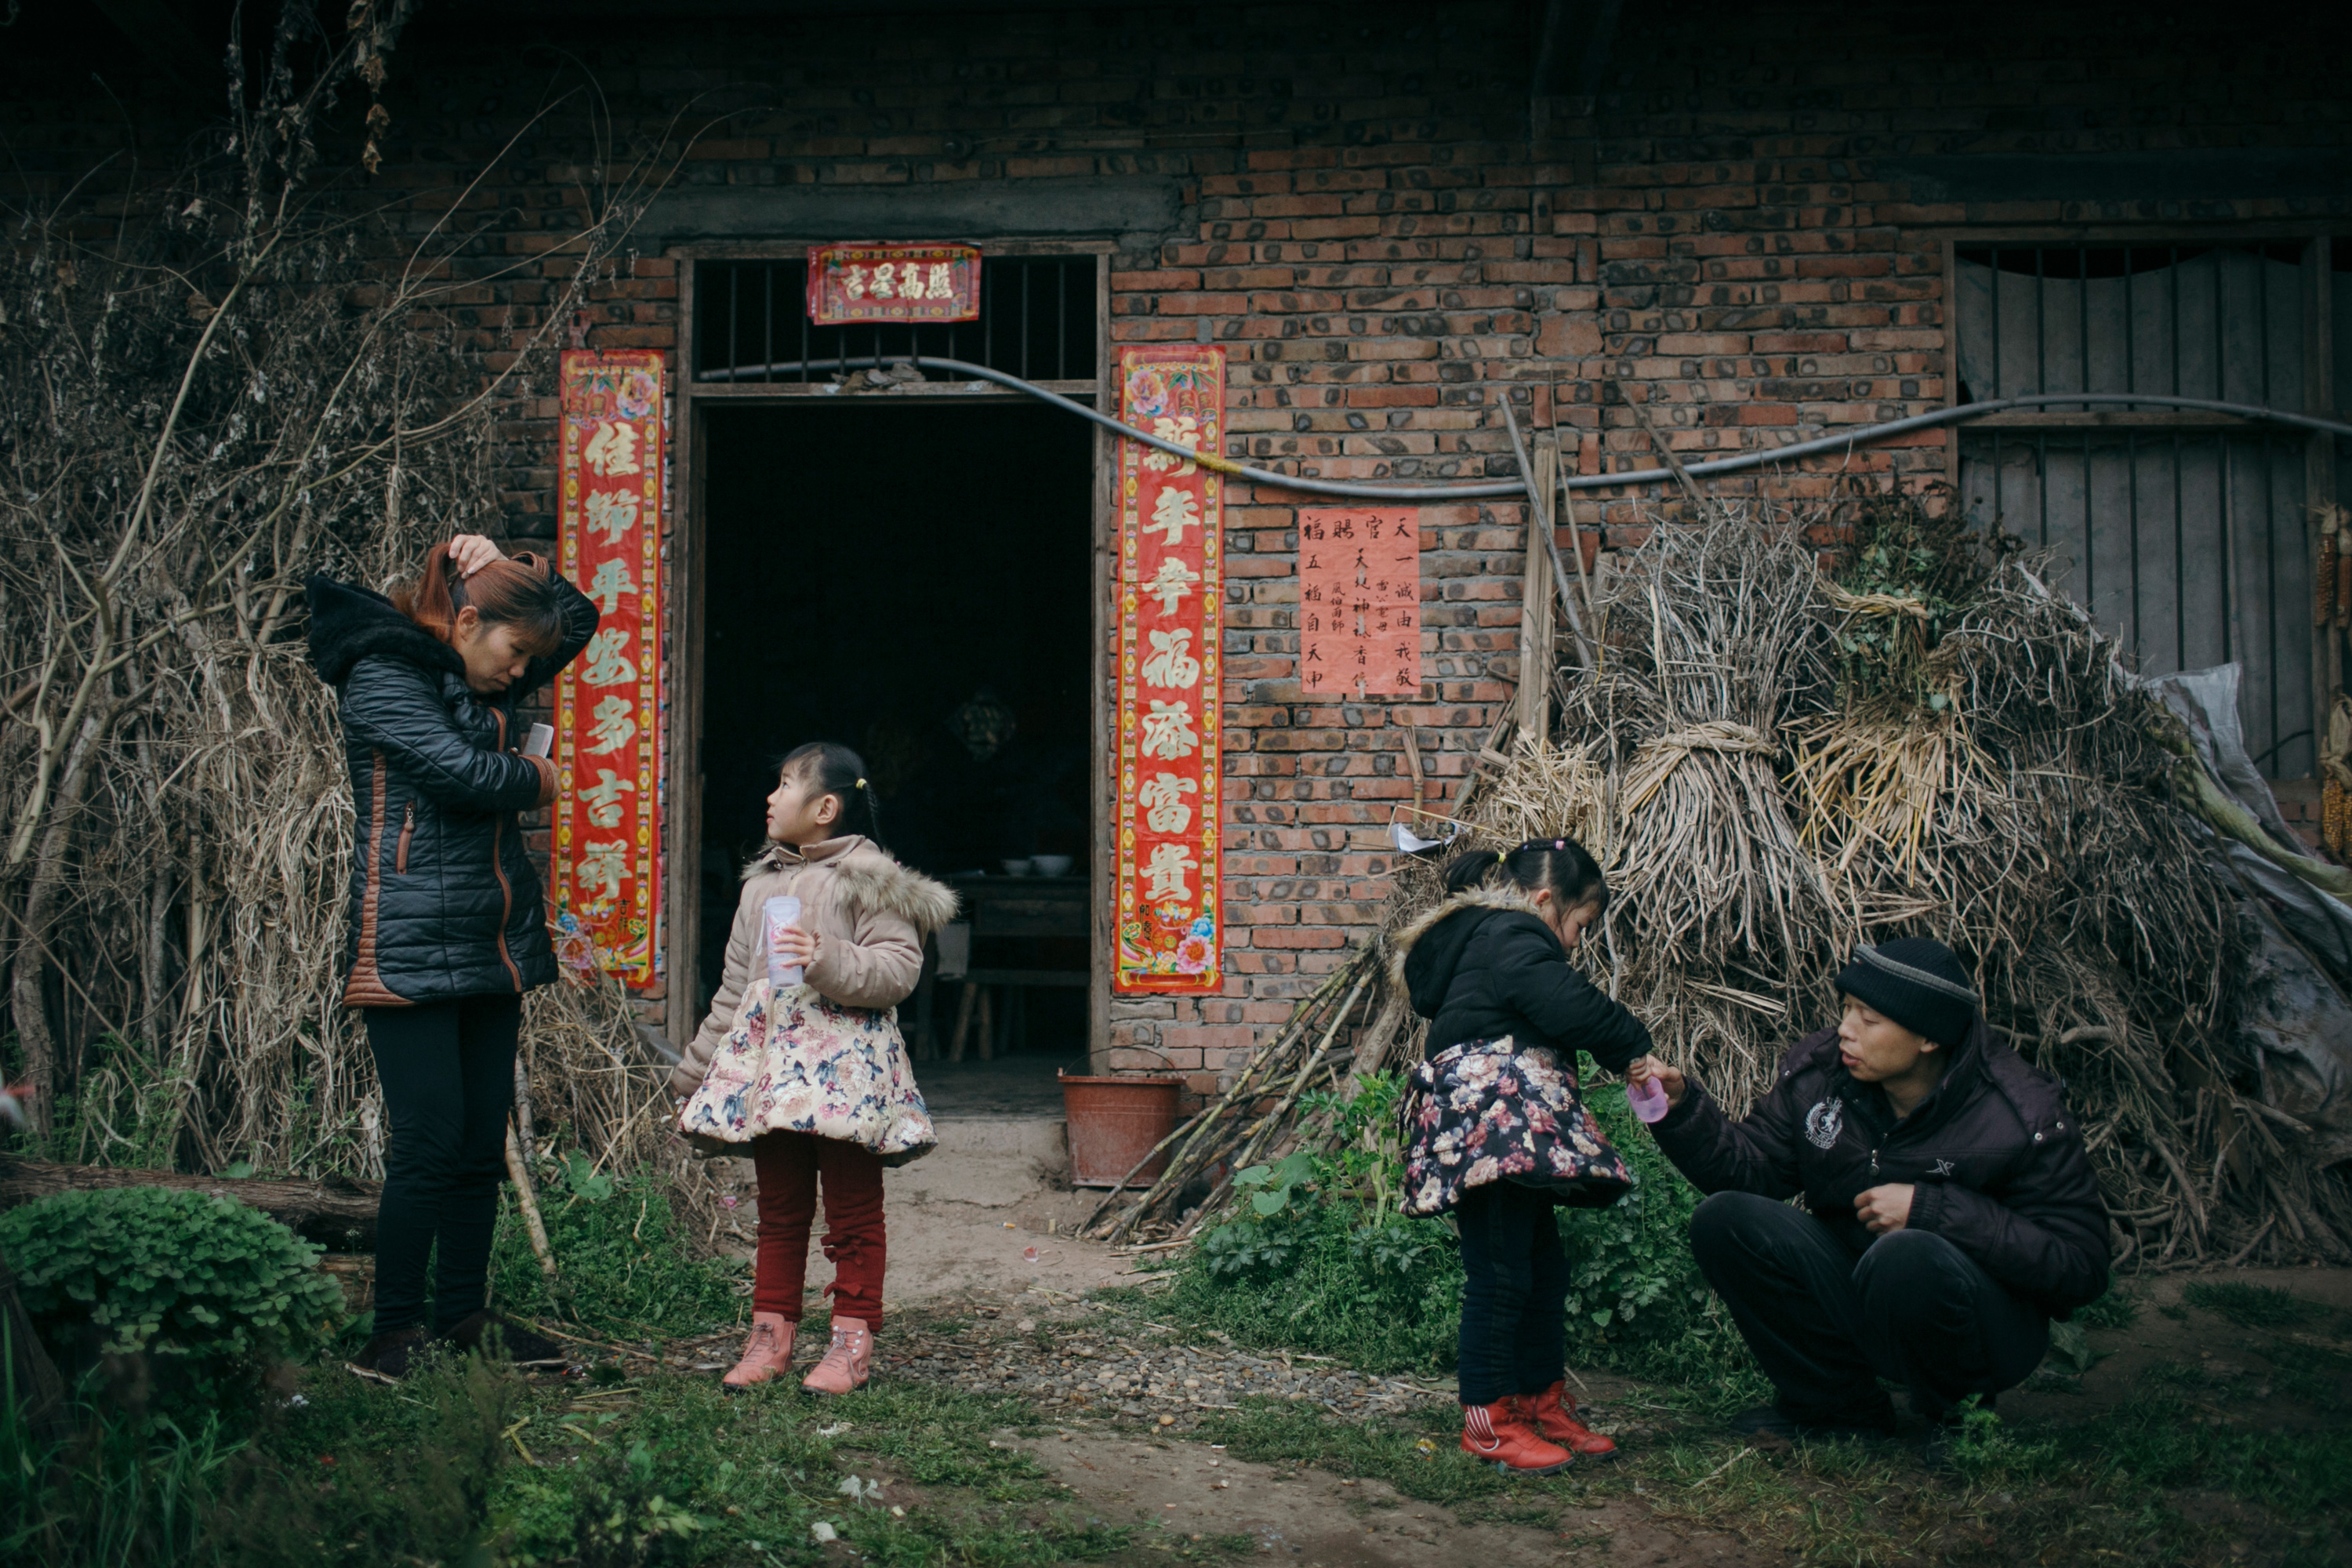 Li Mingjin and Ning Xianfang monitor and help Siyao and Mengmeng brush their teeth, in front of their home in Longjing village, March 6, 2015.